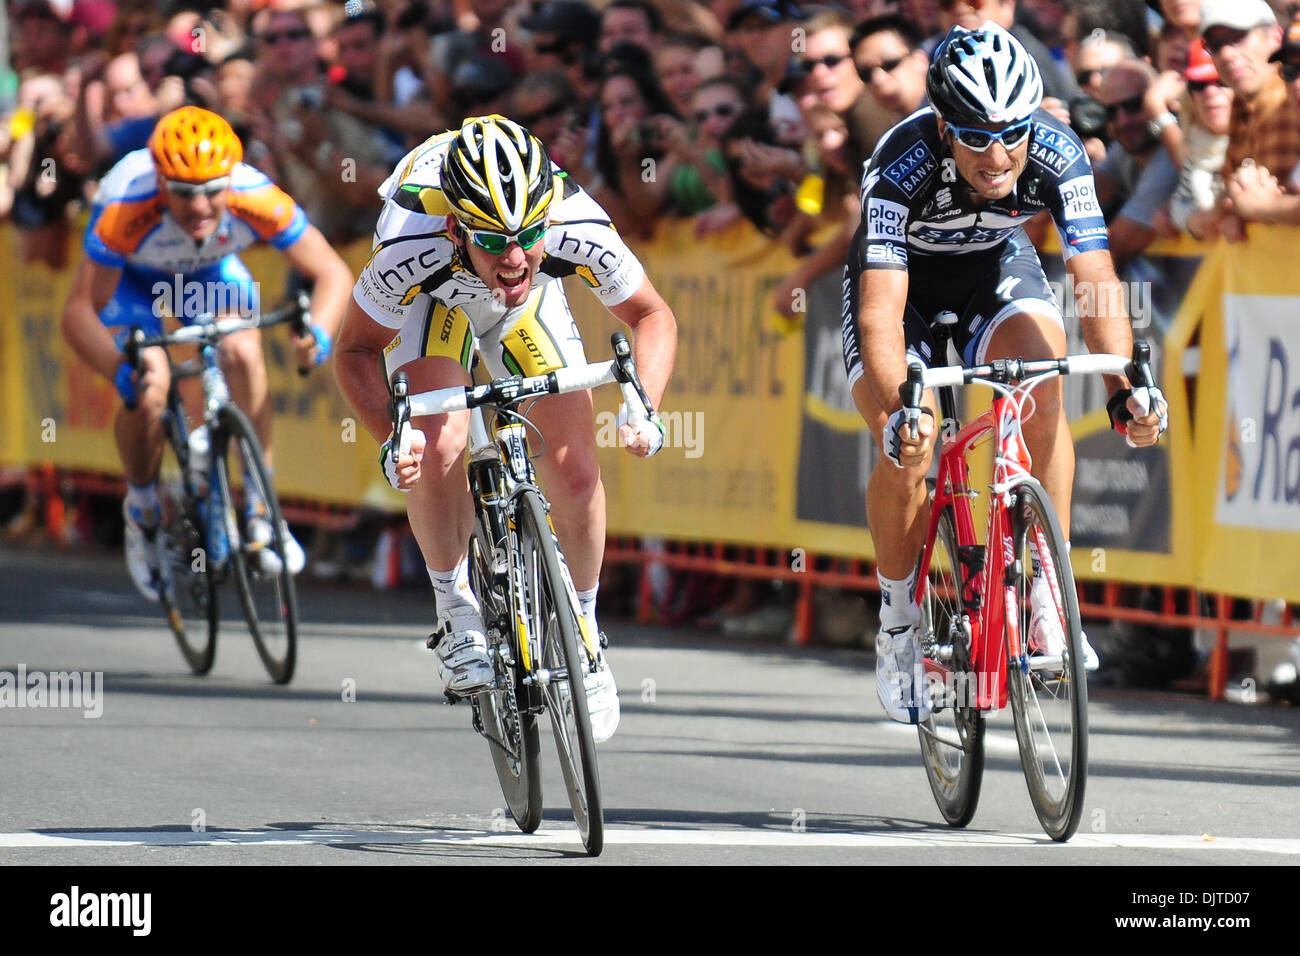 Mark Cavendish of Team HTC-Columbia outsprints Juan Jose Haedo of Team Saxo  Bank for the victory at Stage 1 of the Tour of California. 48f976910